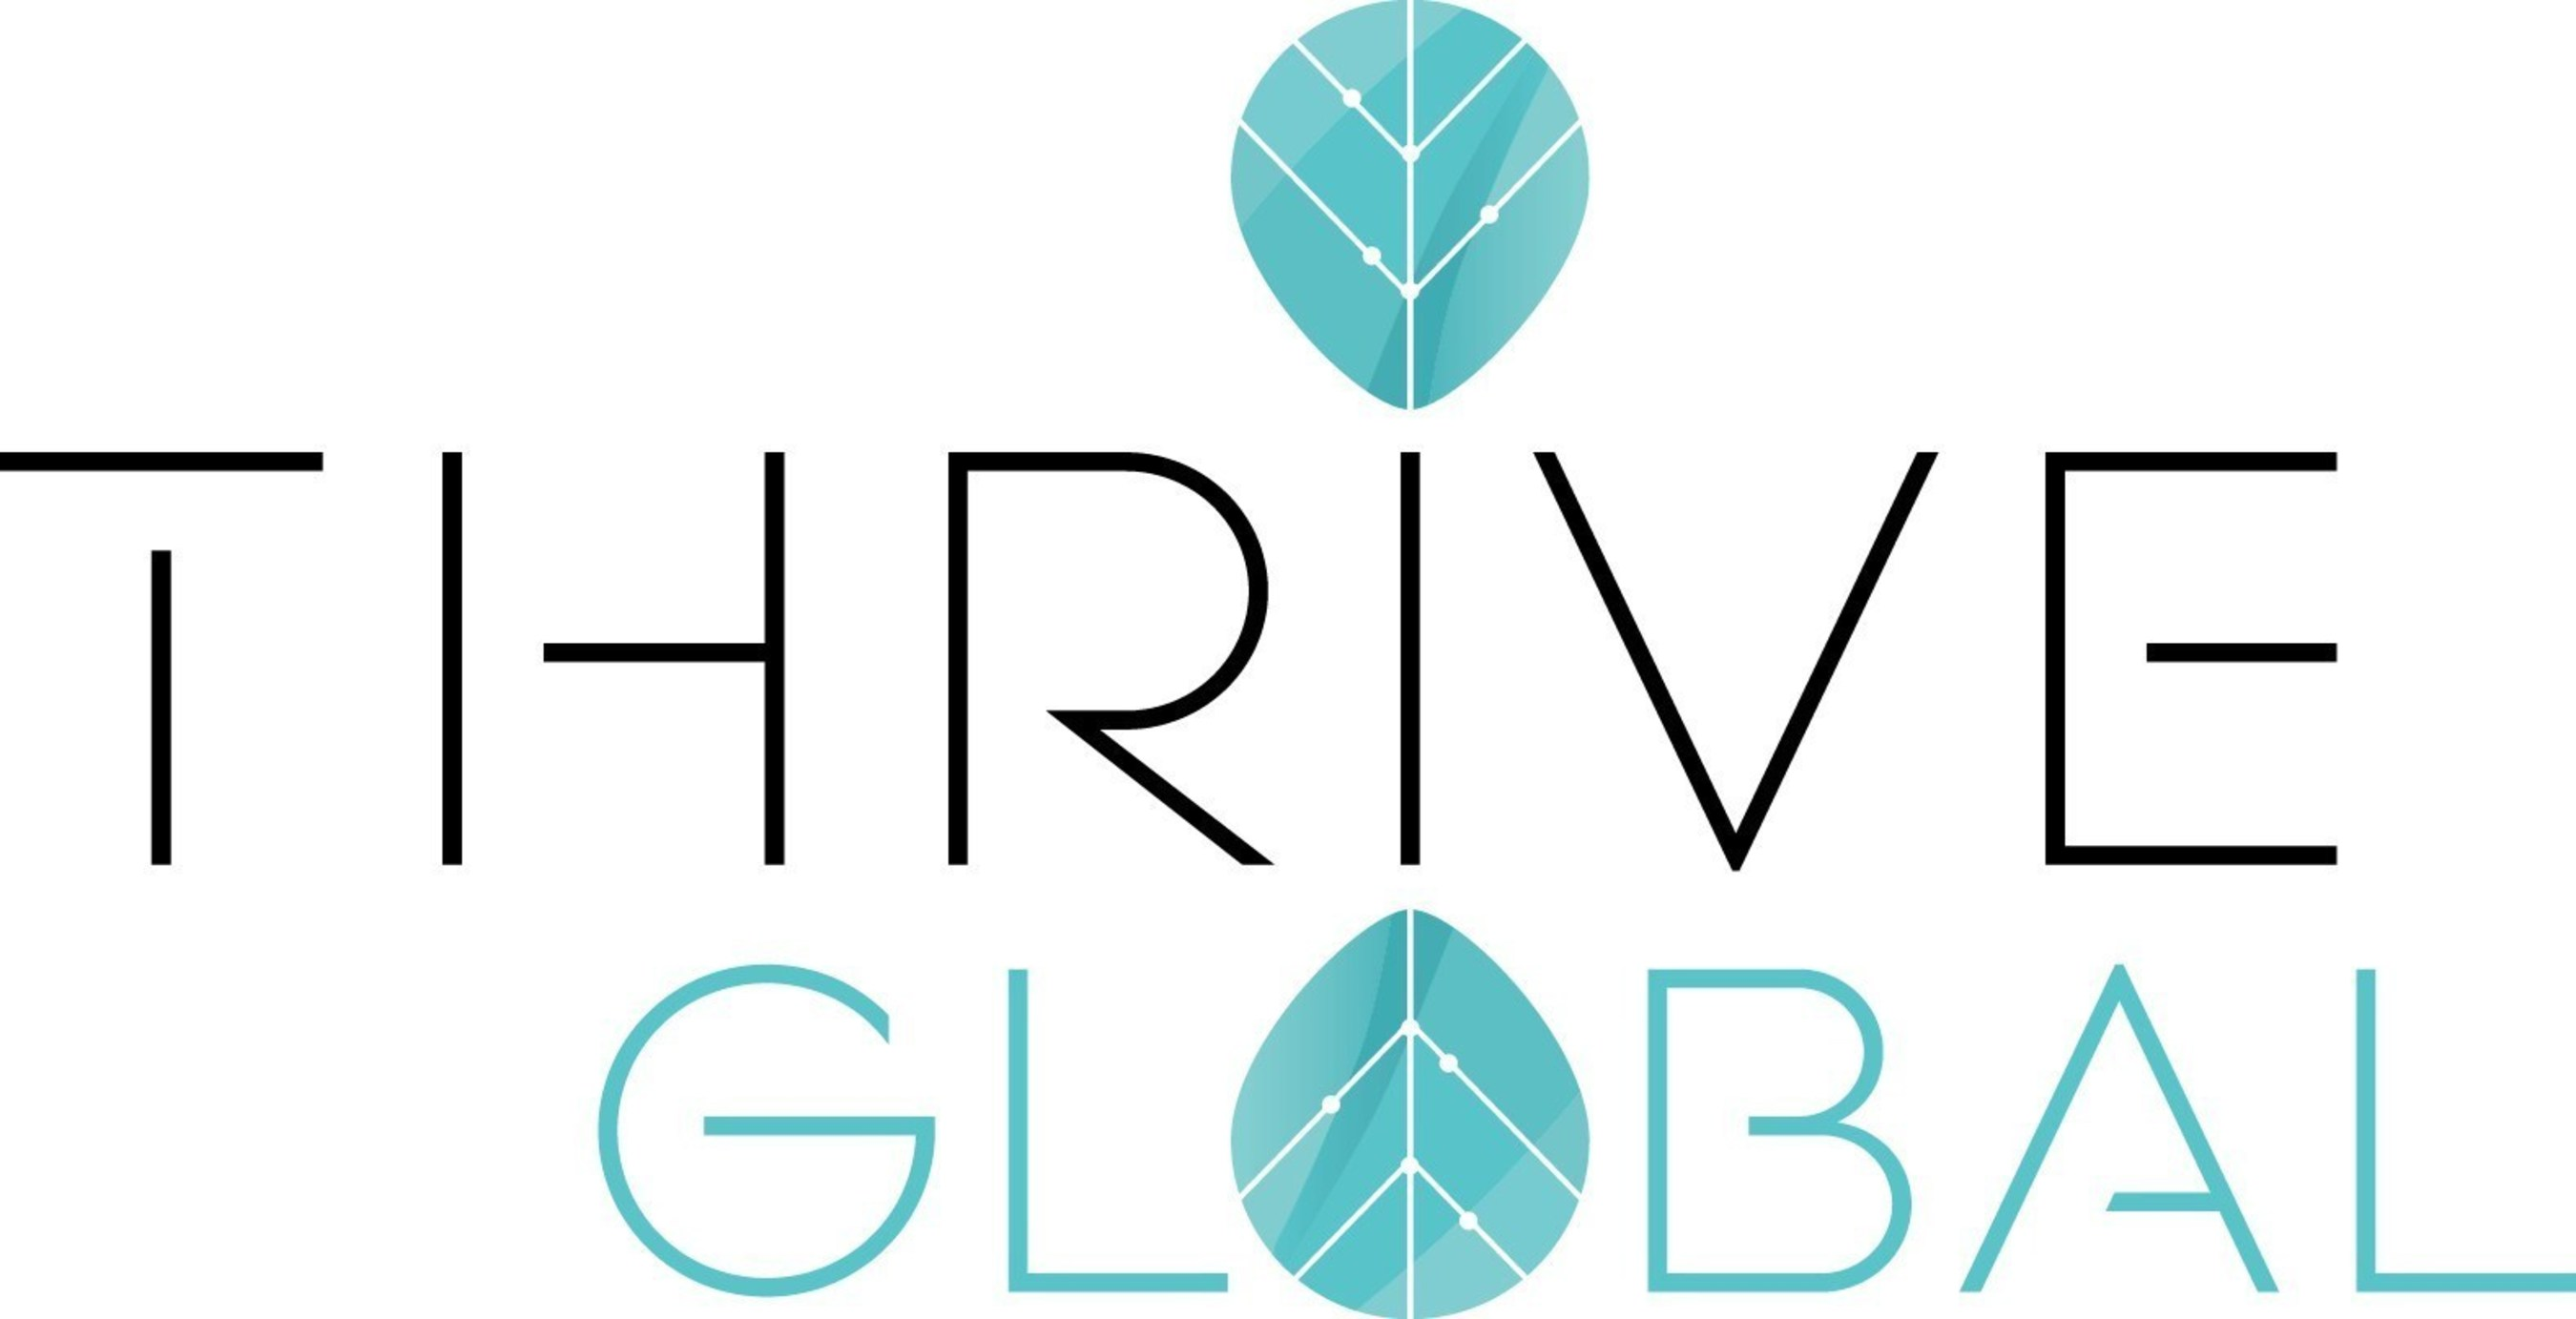 thrive-global-logo.jfif